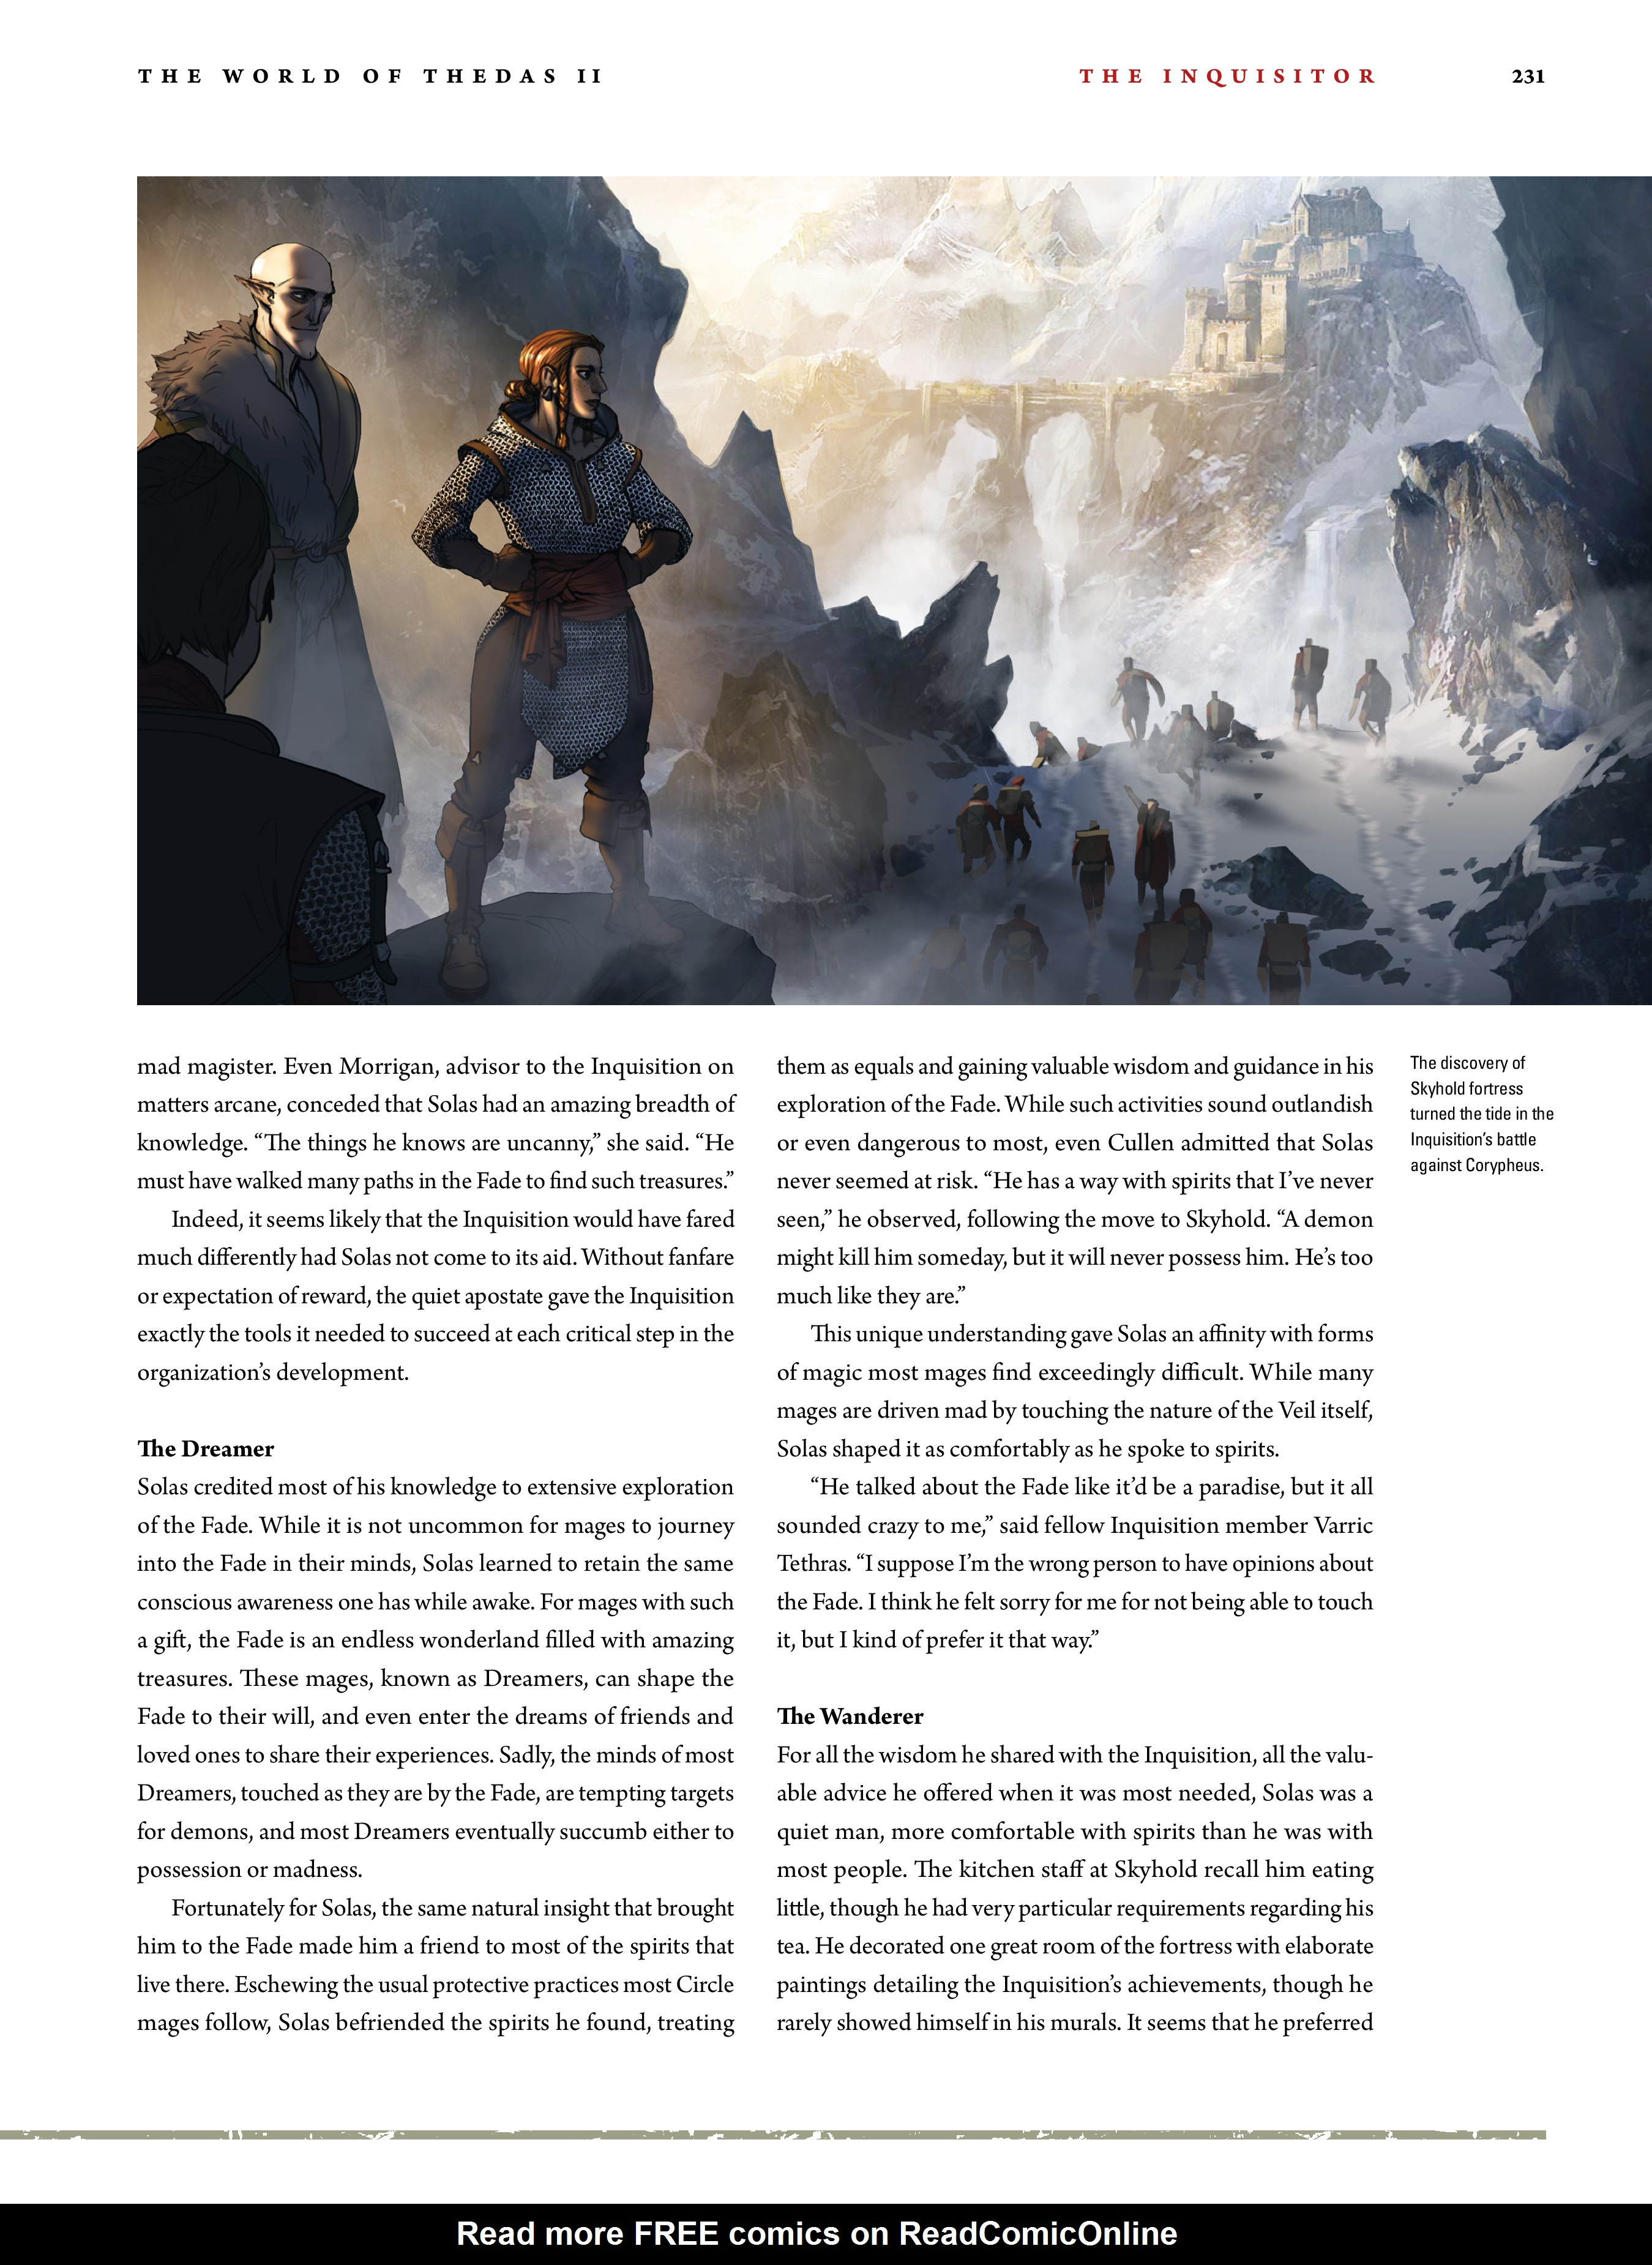 Read online Dragon Age: The World of Thedas comic -  Issue # TPB 2 - 226